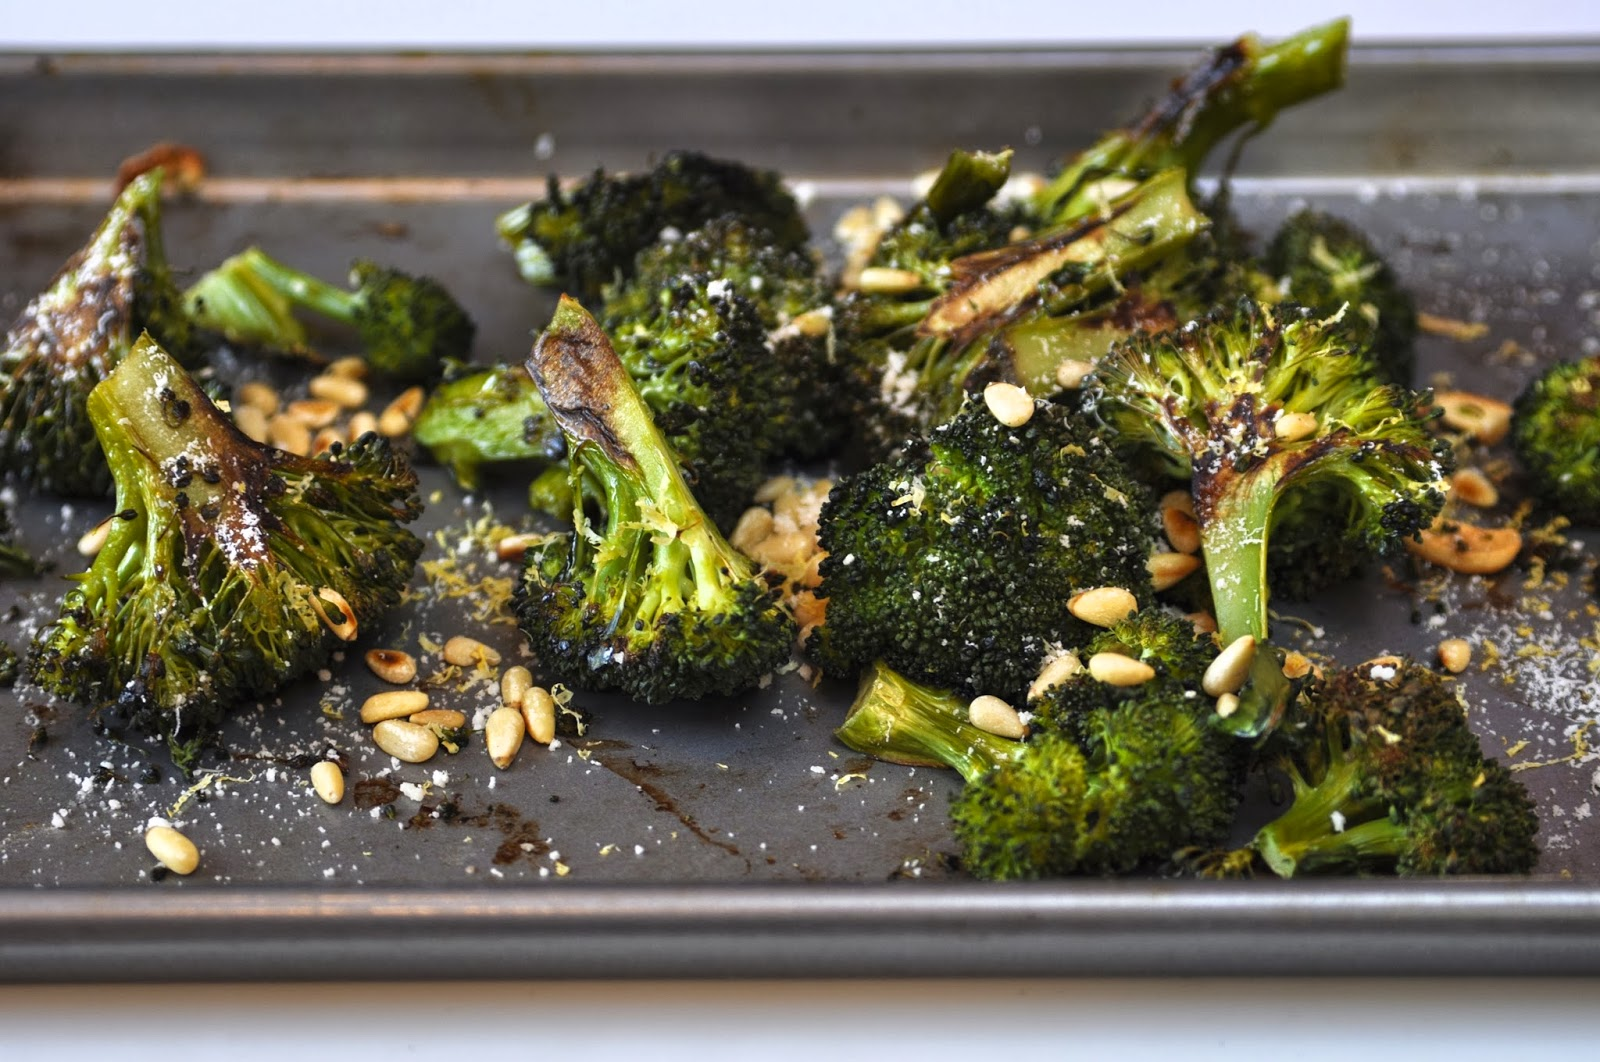 ... Lemons: Roasted Broccoli with Lemon, Pine Nuts, Garlic, & Parmesan